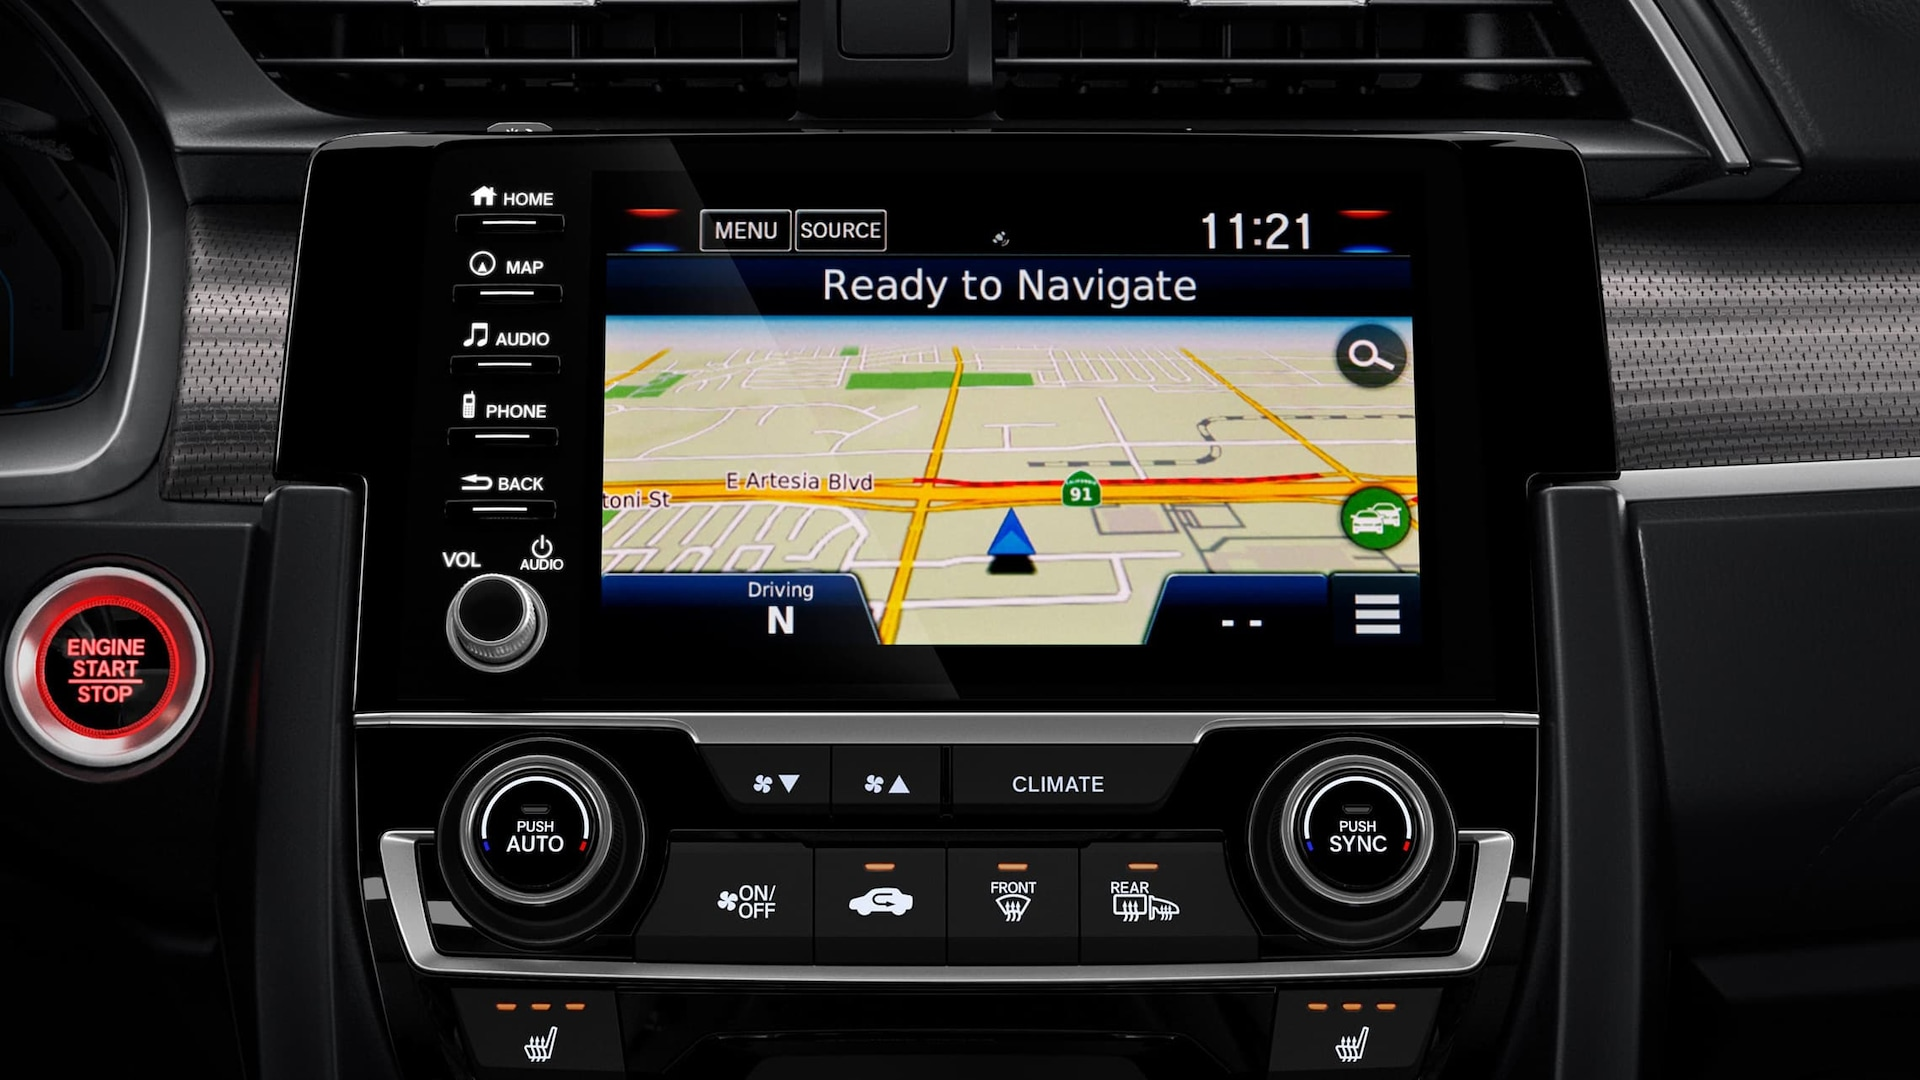 Honda Satellite-Linked Navigation System™ detail on Display Audio touch-screen in the 2020 Honda Civic Touring Sedan.